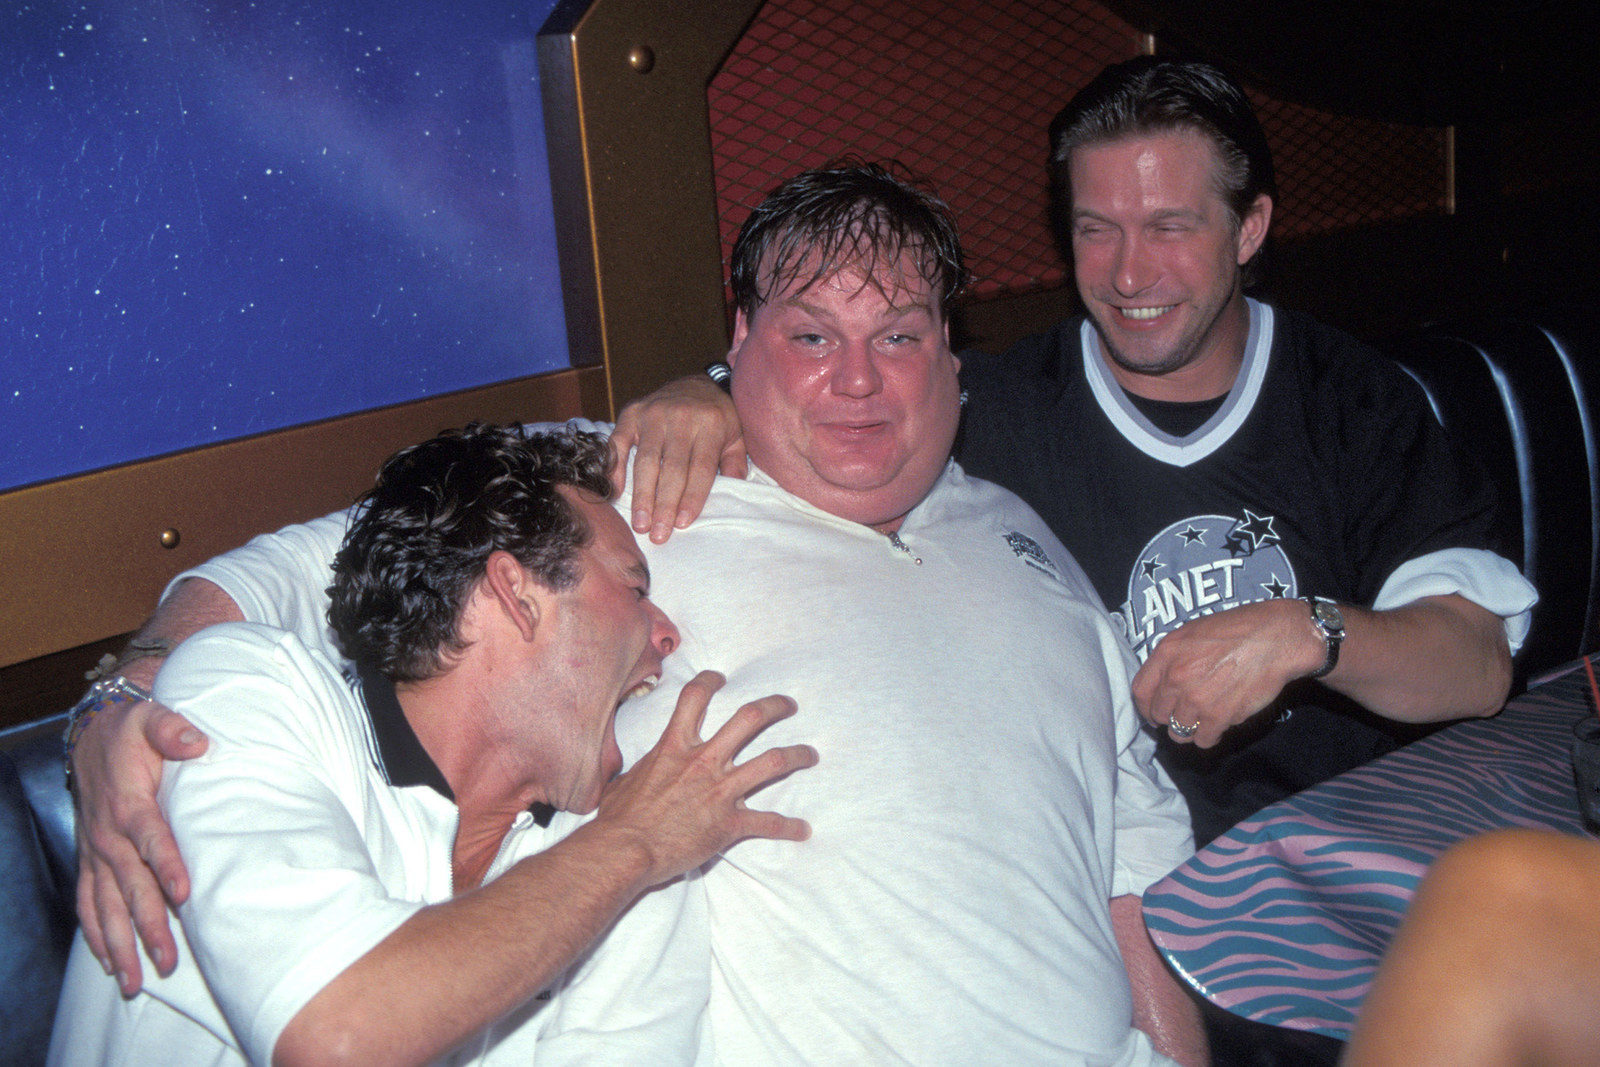 From left, Luke Perry, Chris Farley, and Stephen Baldwin attend a Planet Hollywood event in New York City on June 12, 2002.